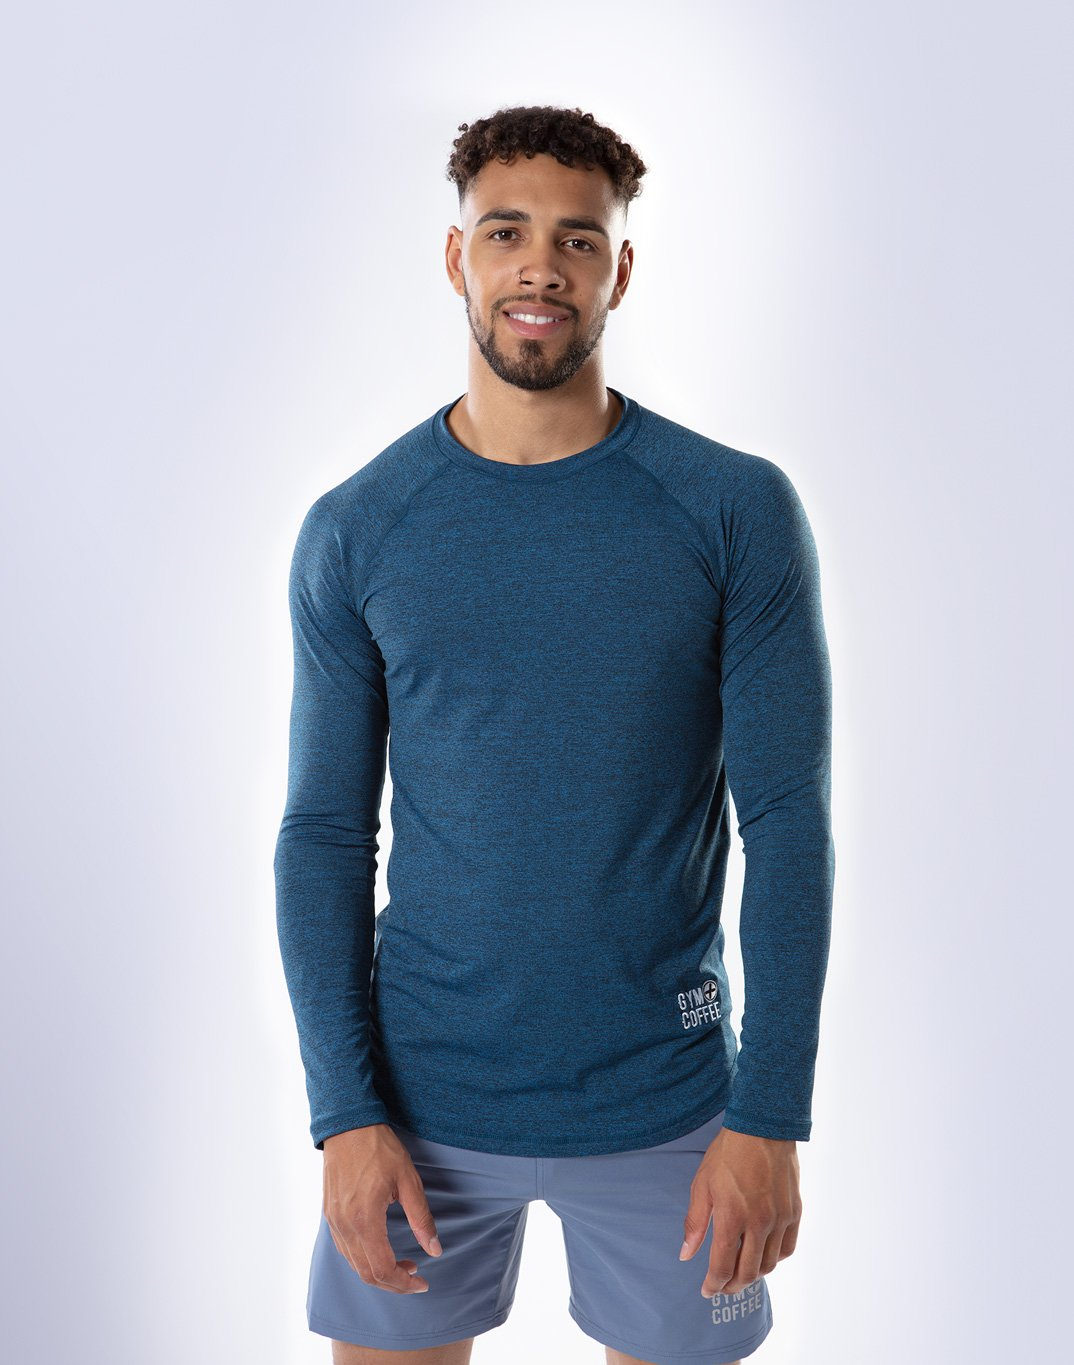 Gym Plus Coffee Long Sleeve Raglan Tech Long Sleeve in Navy Designed in Ireland